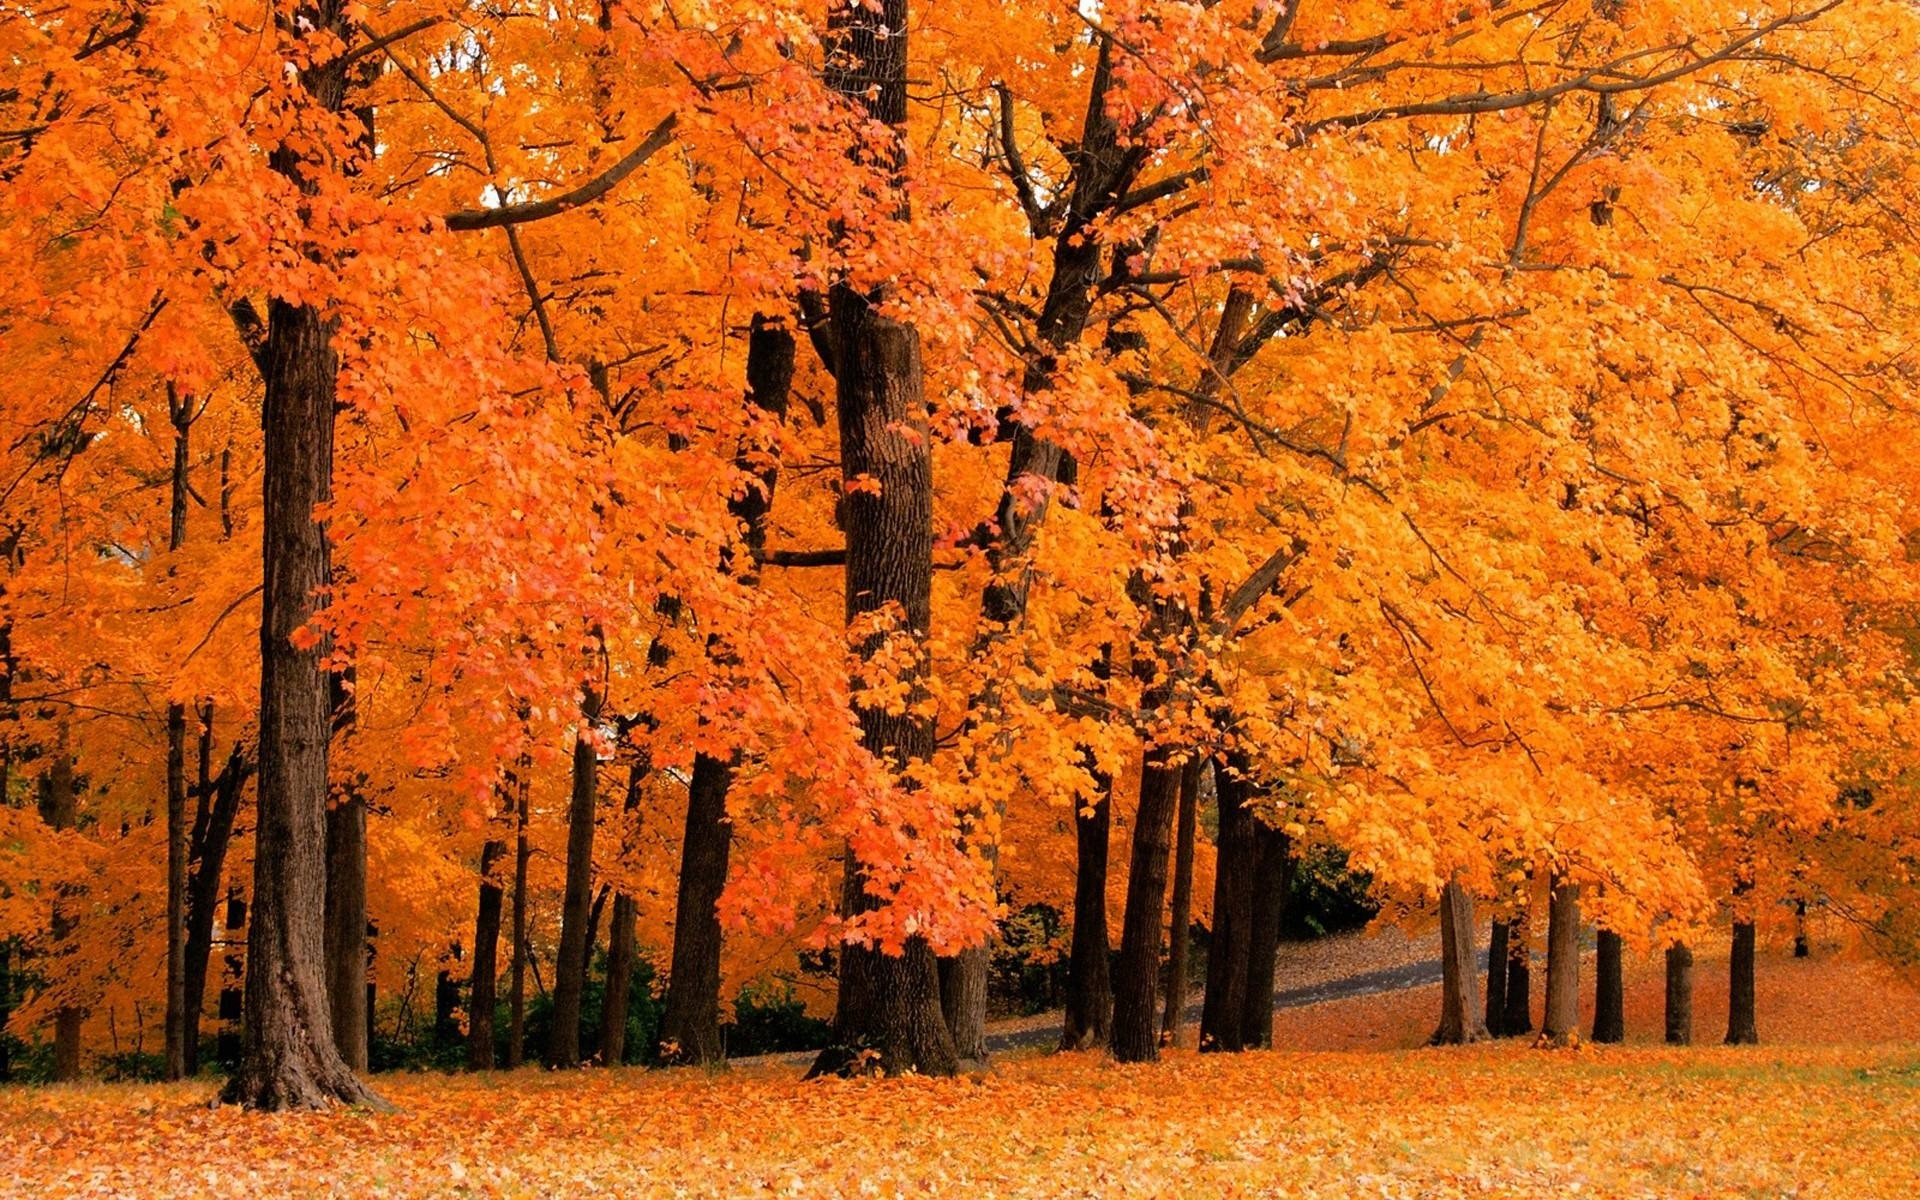 Cute Autumn Desktop Wallpaper 78 Images